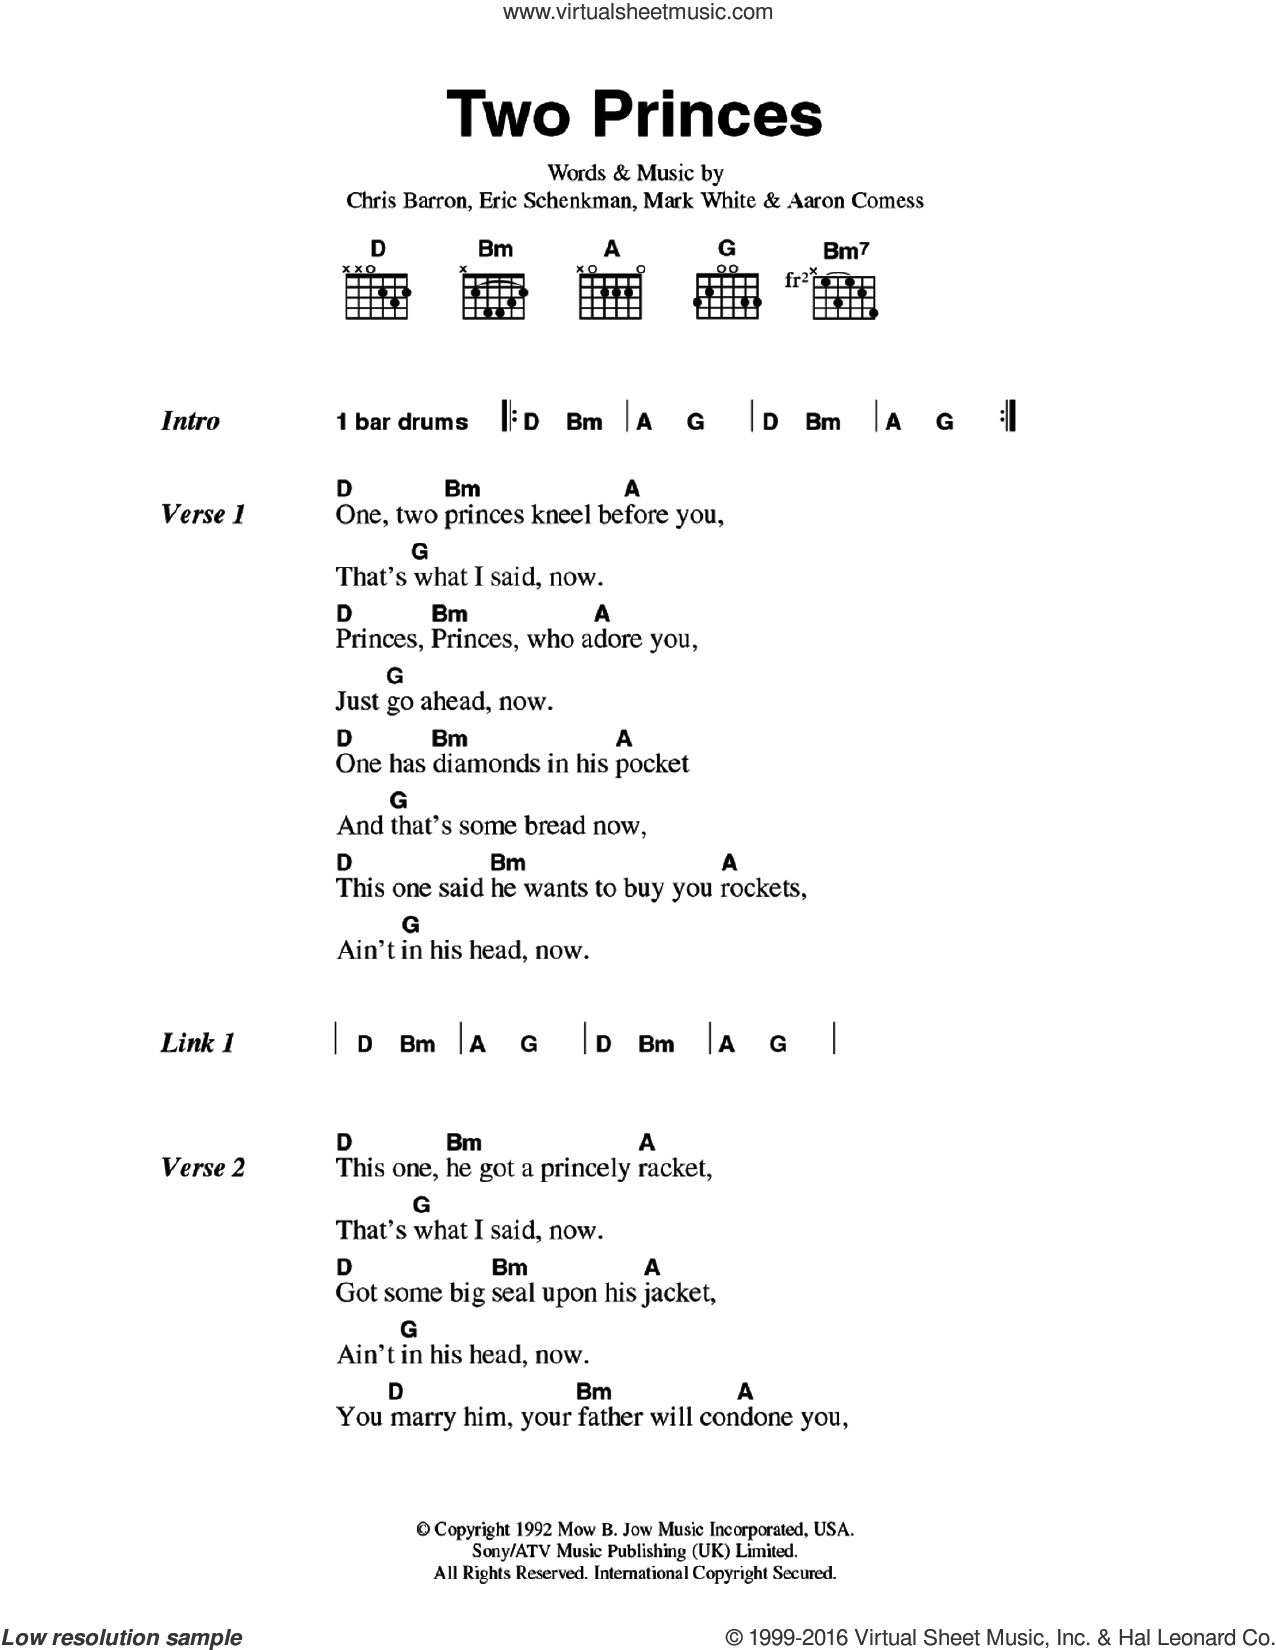 Two Princes sheet music for guitar (chords) by Spin Doctors, Aaron Comess, Chris Barron, Eric Schenkman and Mark White, intermediate skill level